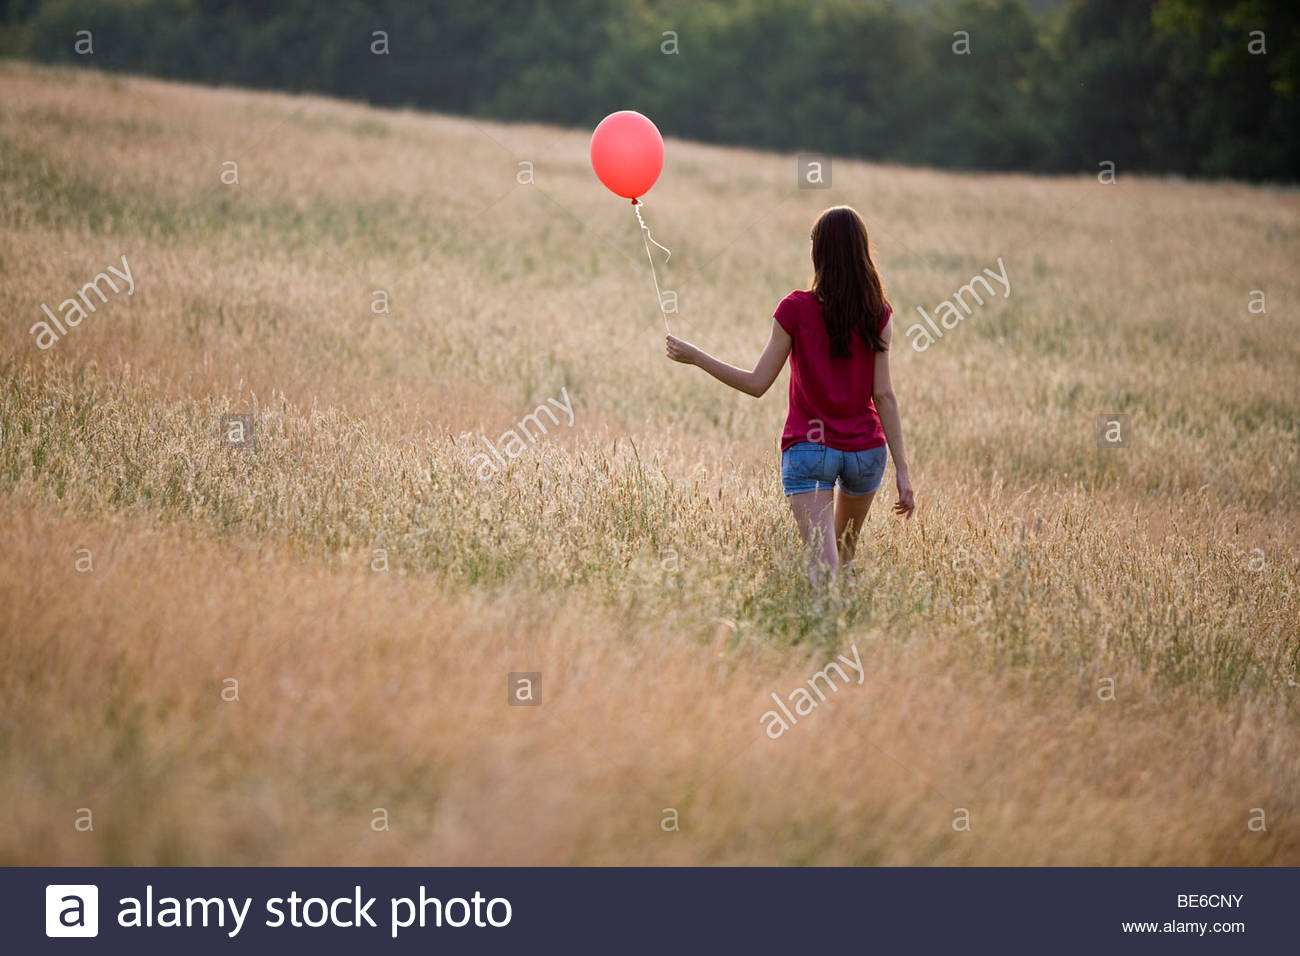 A young woman walking through long grass holding a red balloon - Stock Image